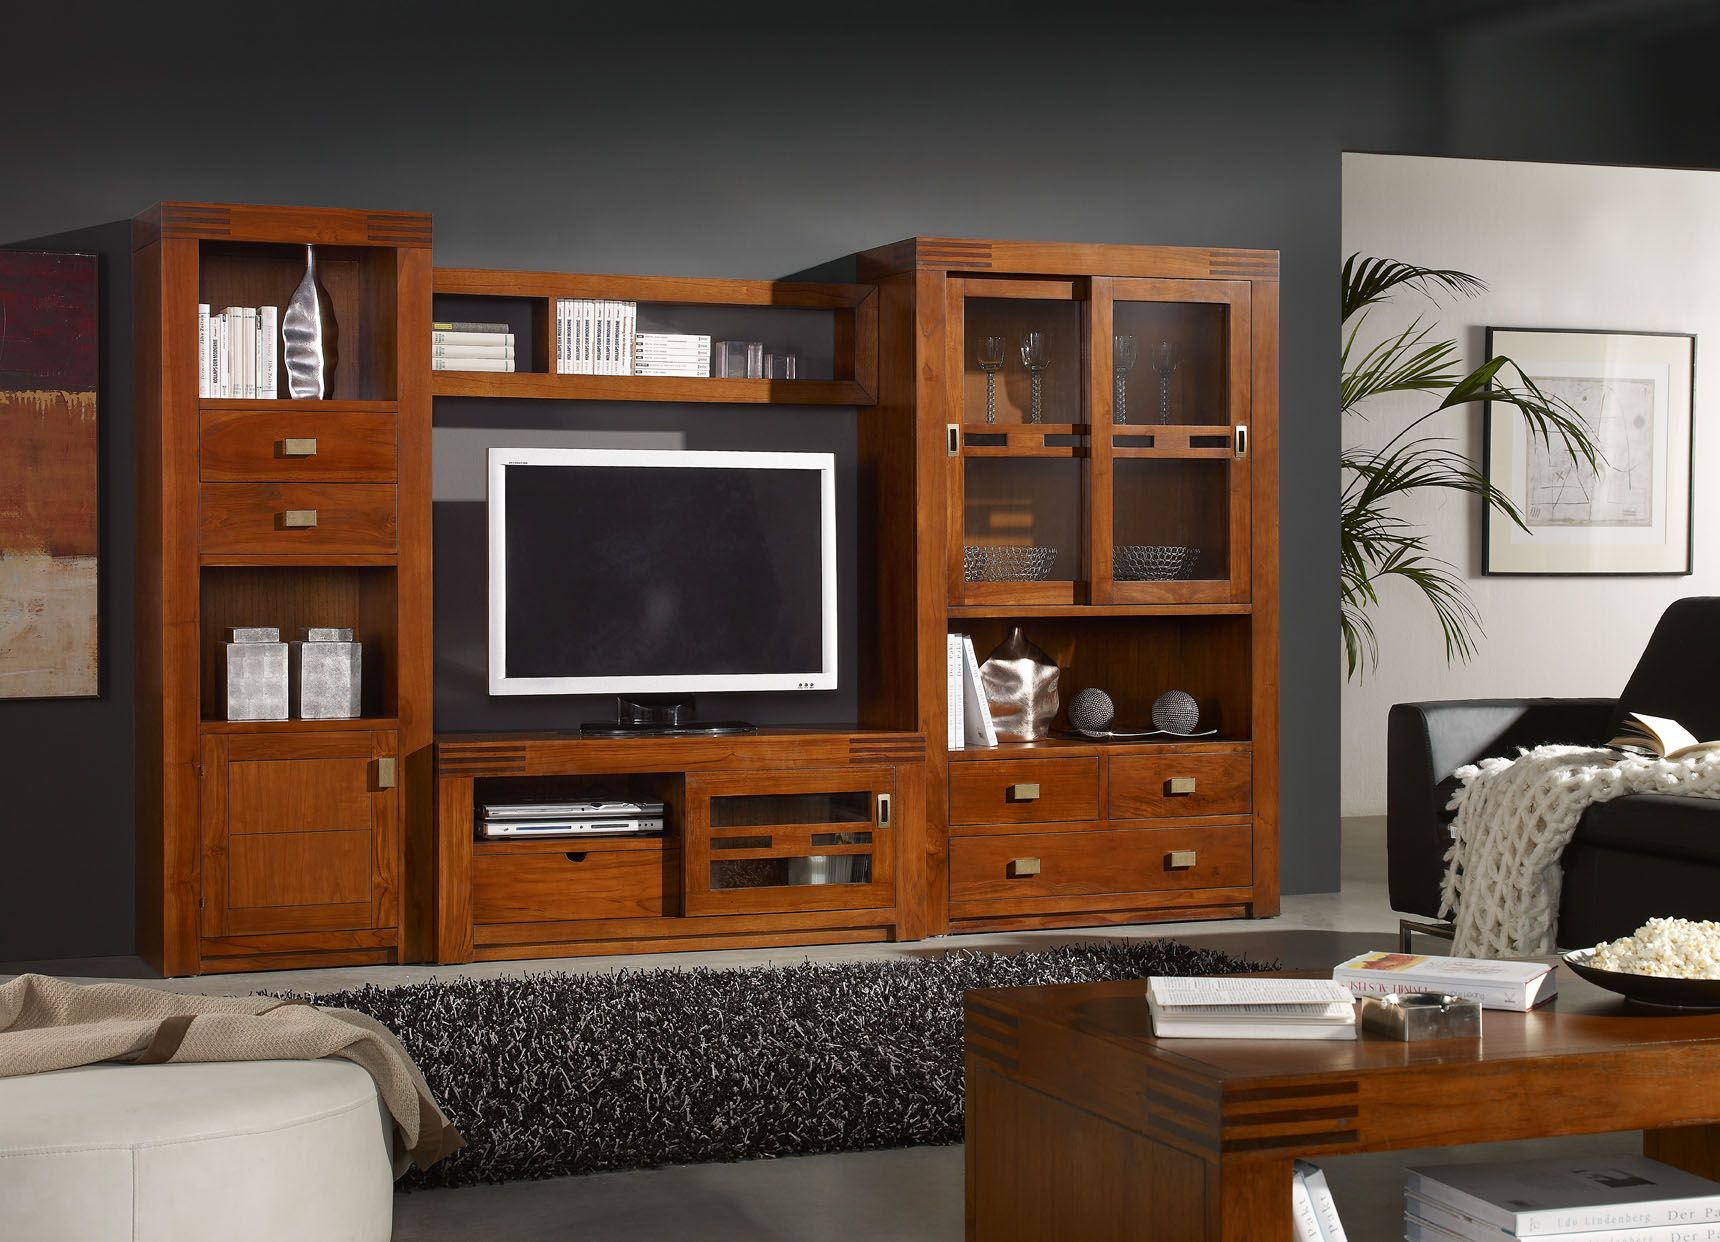 Modular colonial serie wood muebles coloniales - Muebles coloniales ...